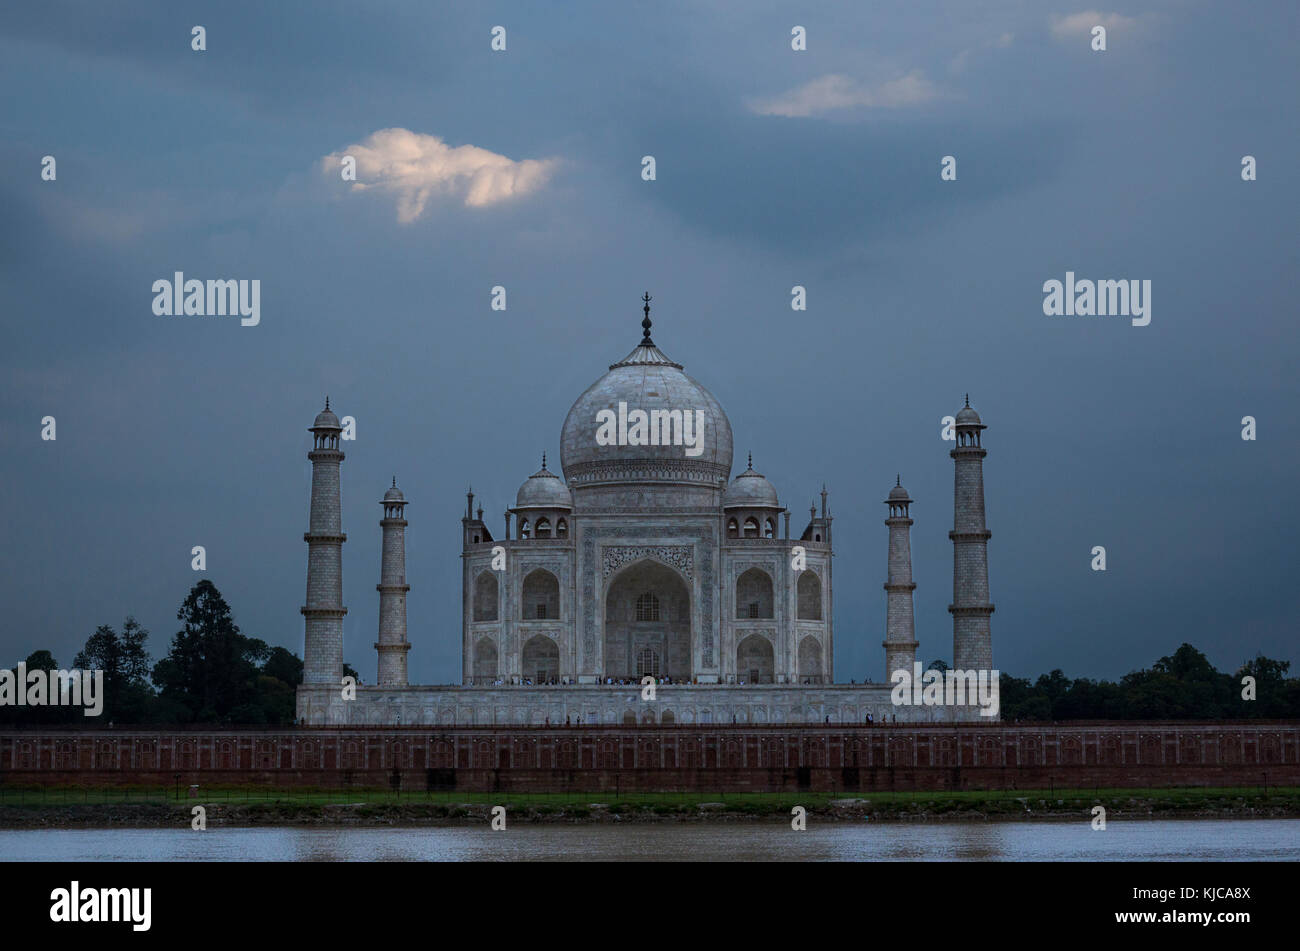 Taj Mahal under storm clouds as seen from Mehtob Bagh Park across the Yamuna River in Agra, India. - Stock Image